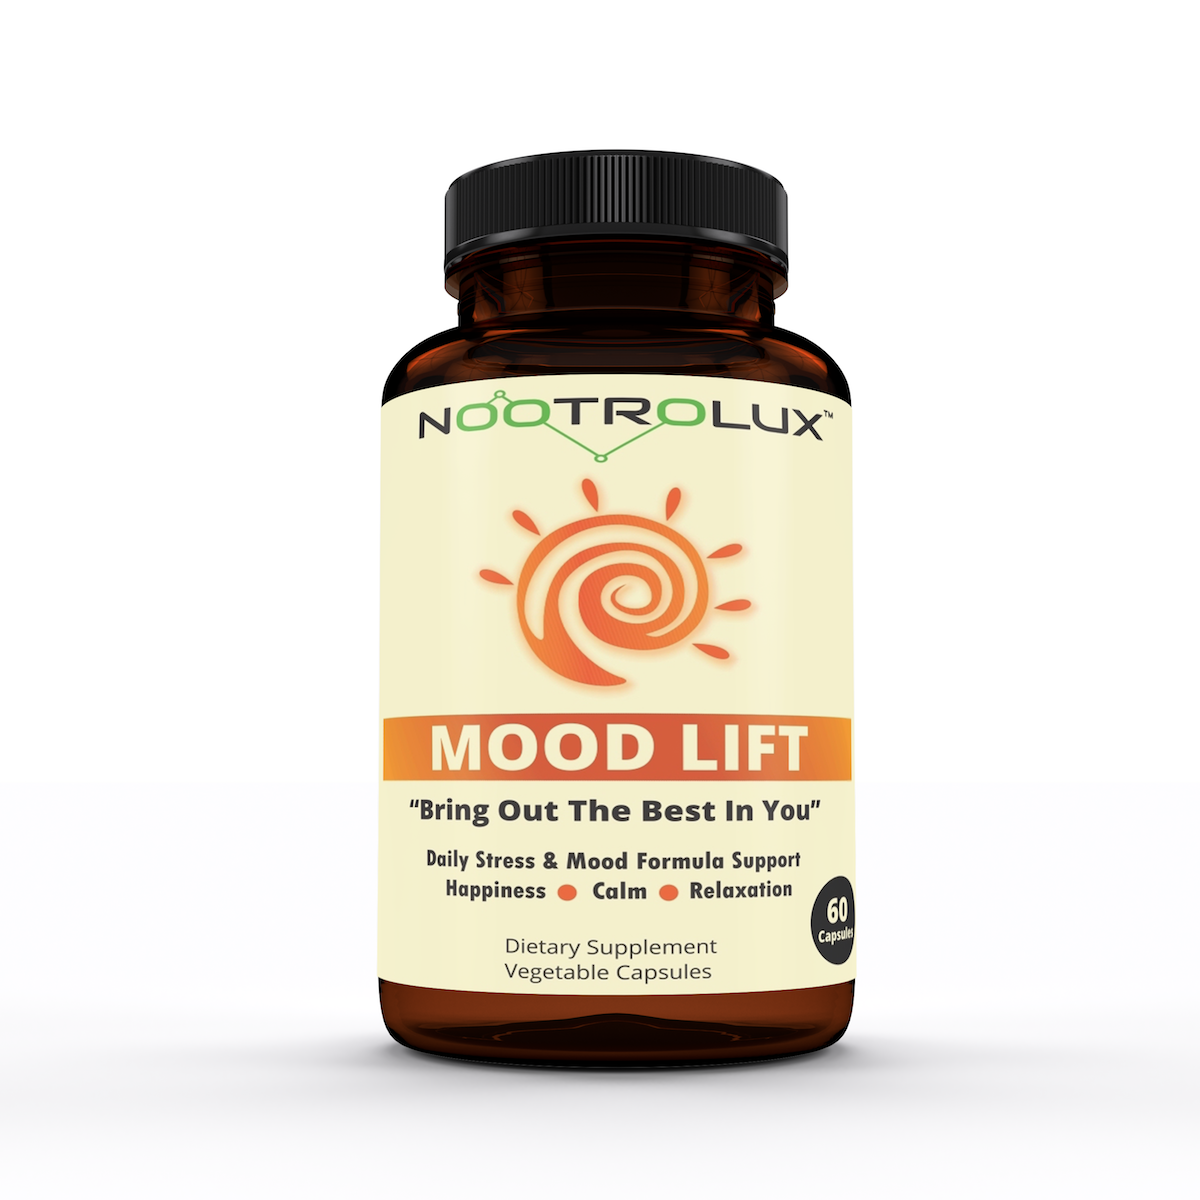 Nootrolux Mood Lift